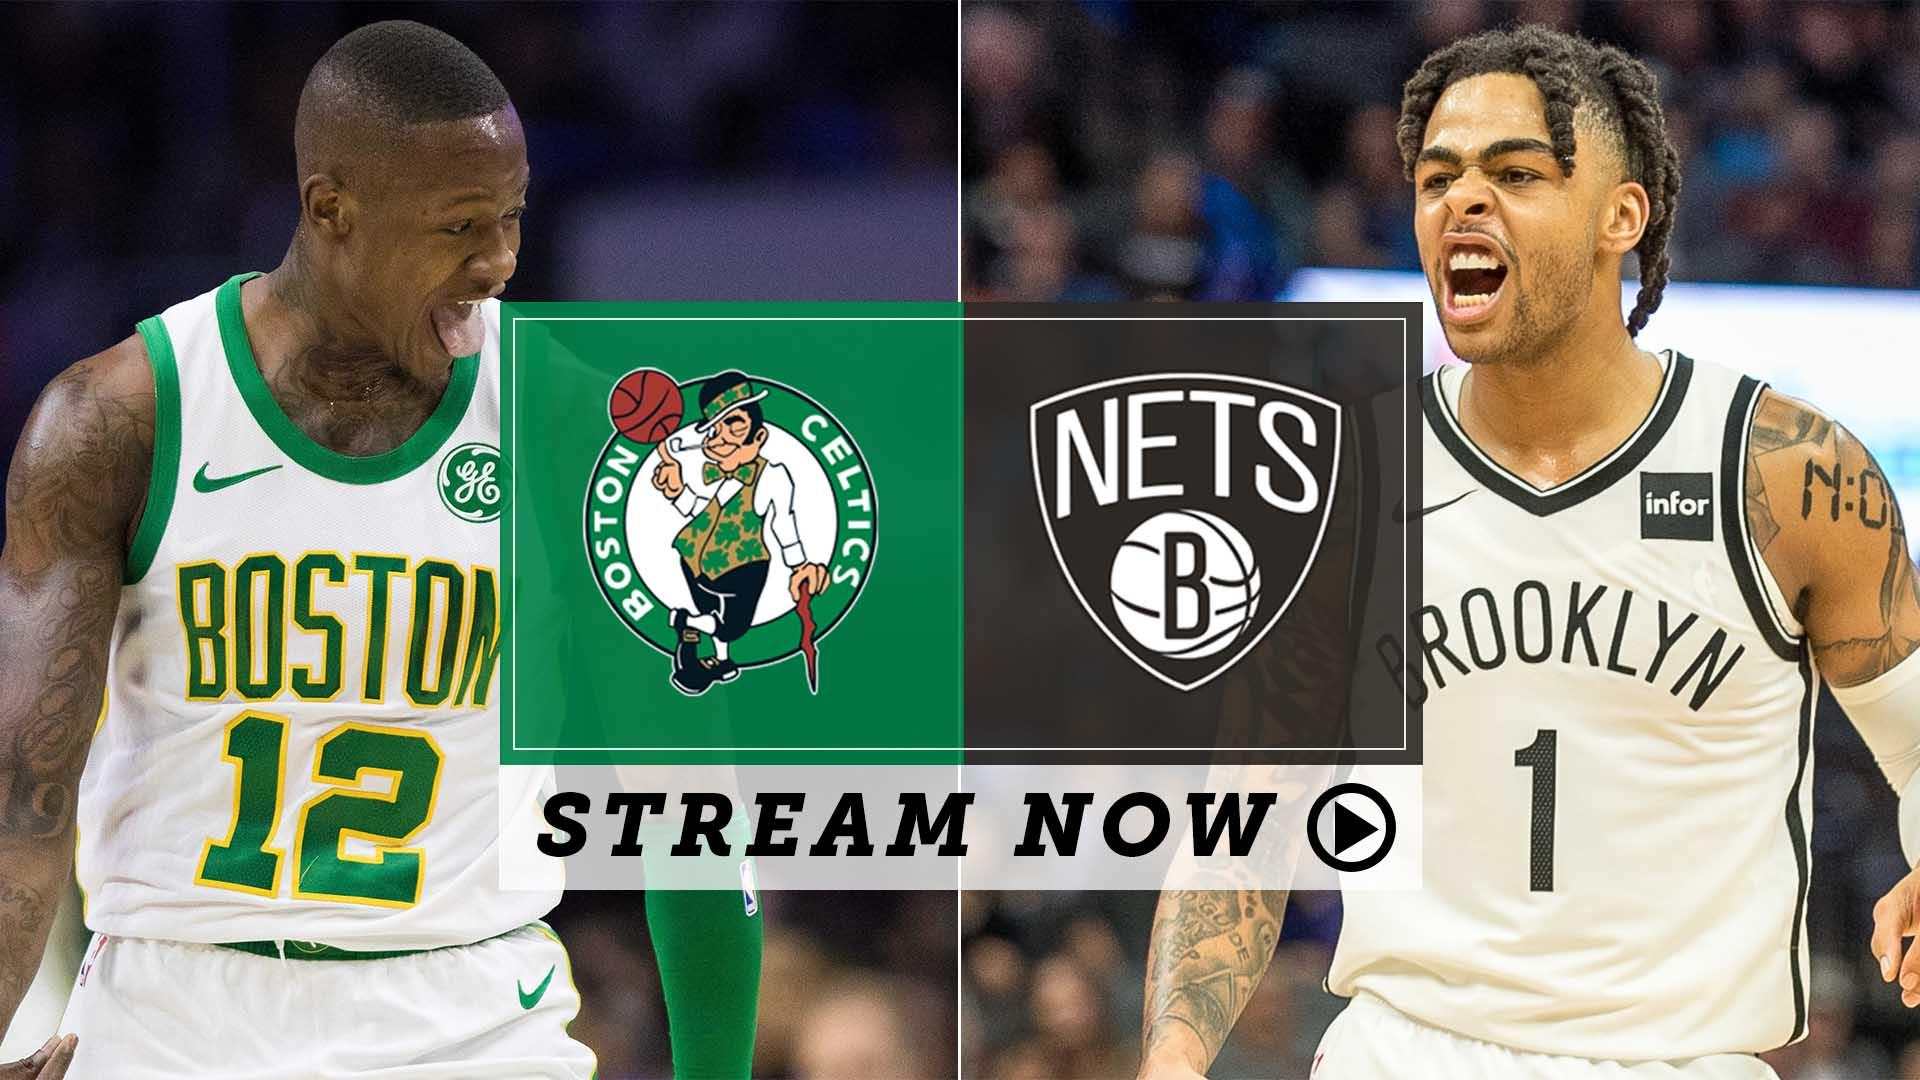 5a46ab50d654 How to watch or stream the Boston Celtics vs. Brooklyn Nets game